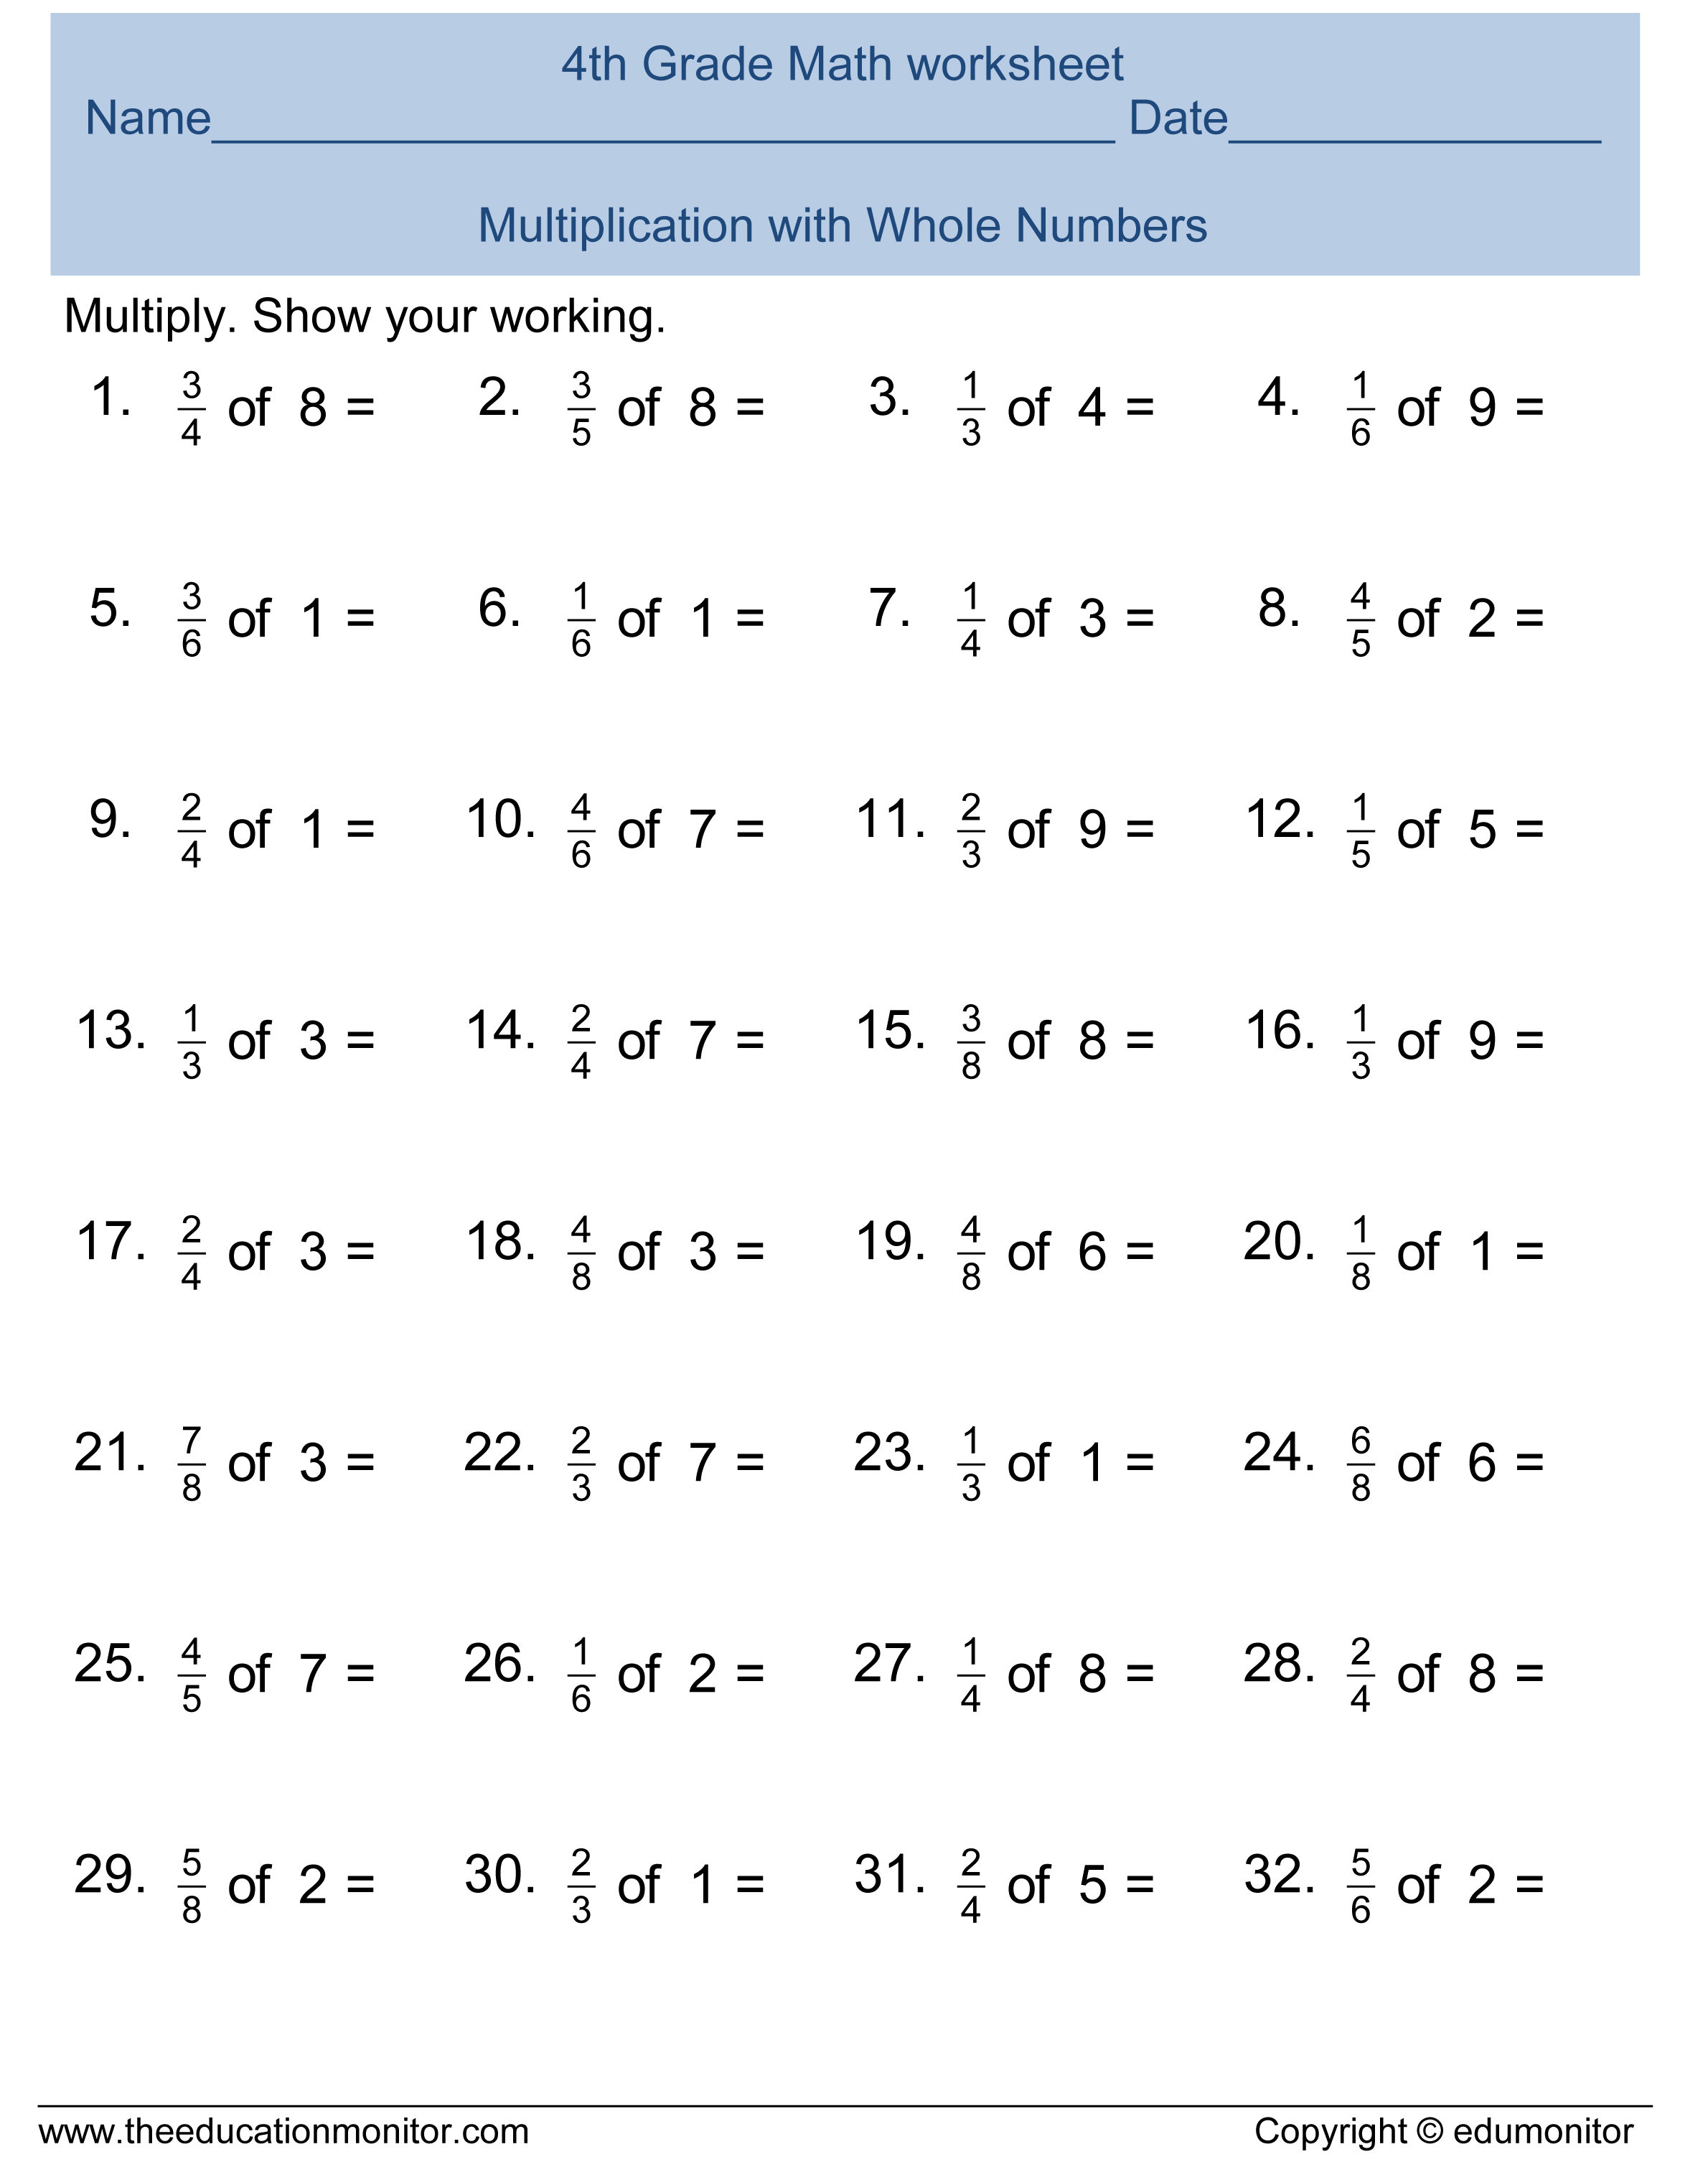 math worksheet : free printable worksheets for 4th grade : 4th Grade Printable Math Worksheets